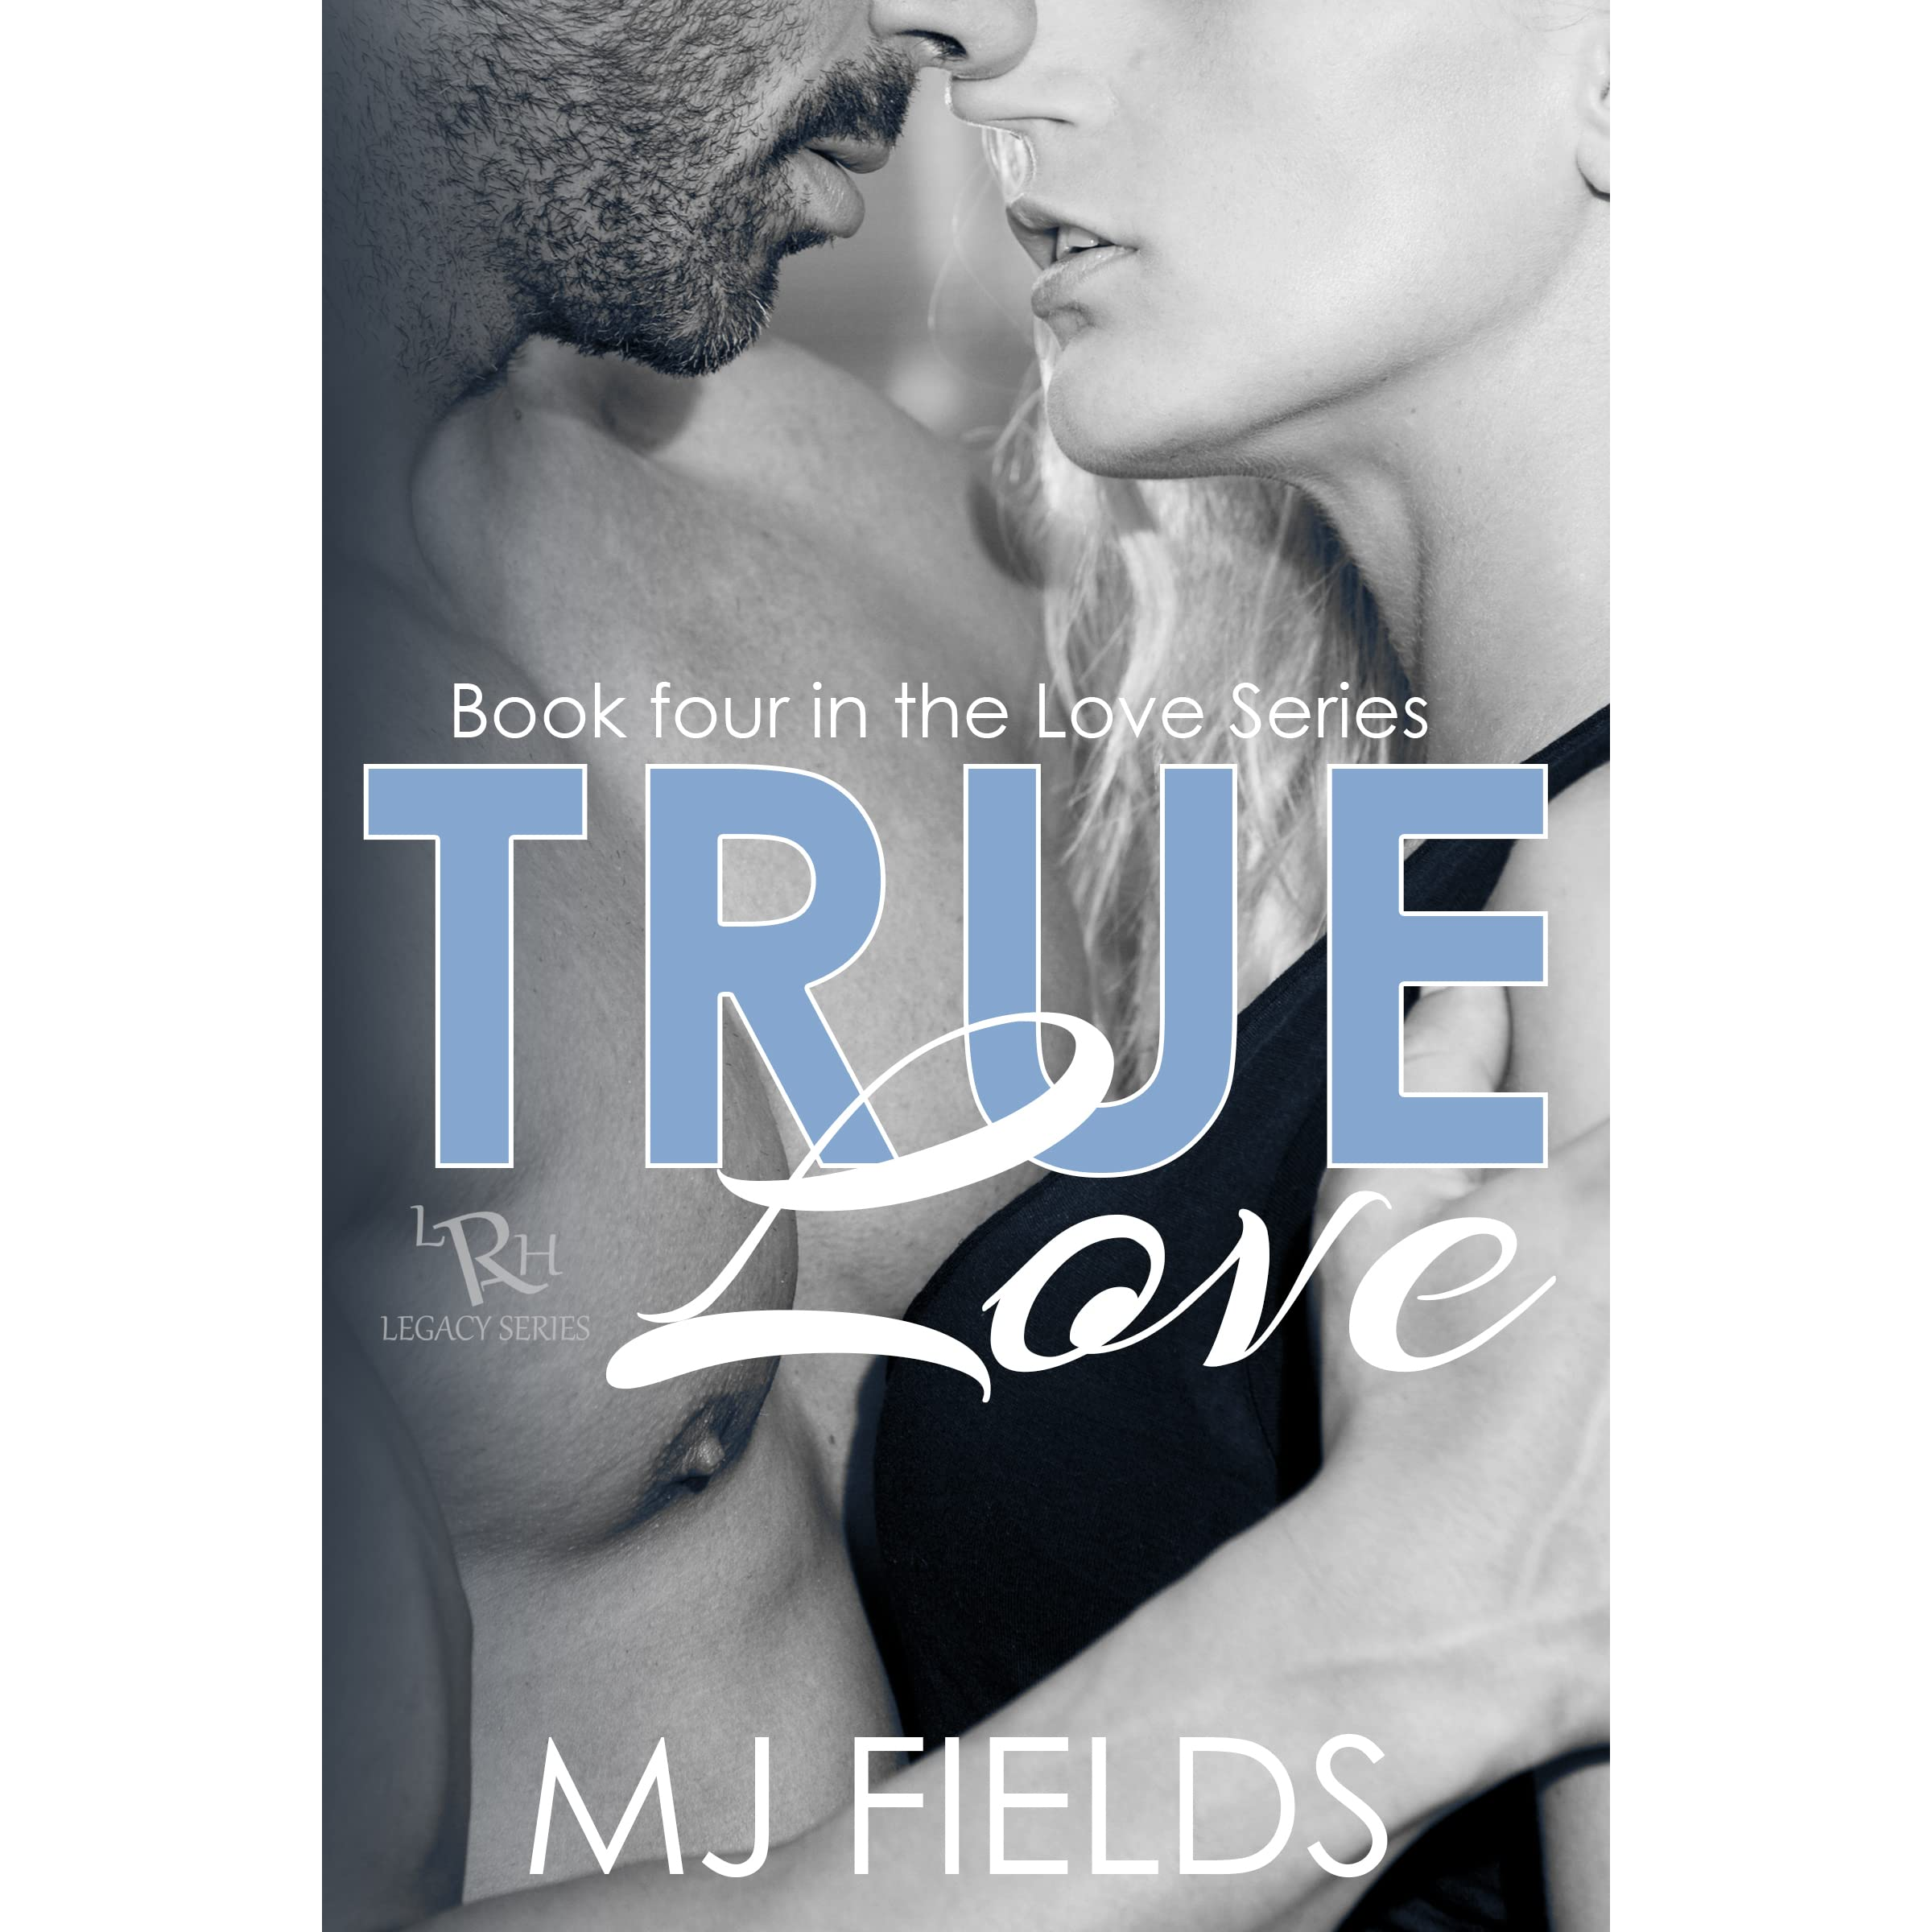 J Loved The Field On The Wall Look ȁ�: True Love (The Love Series, #4) By M.J. Fields